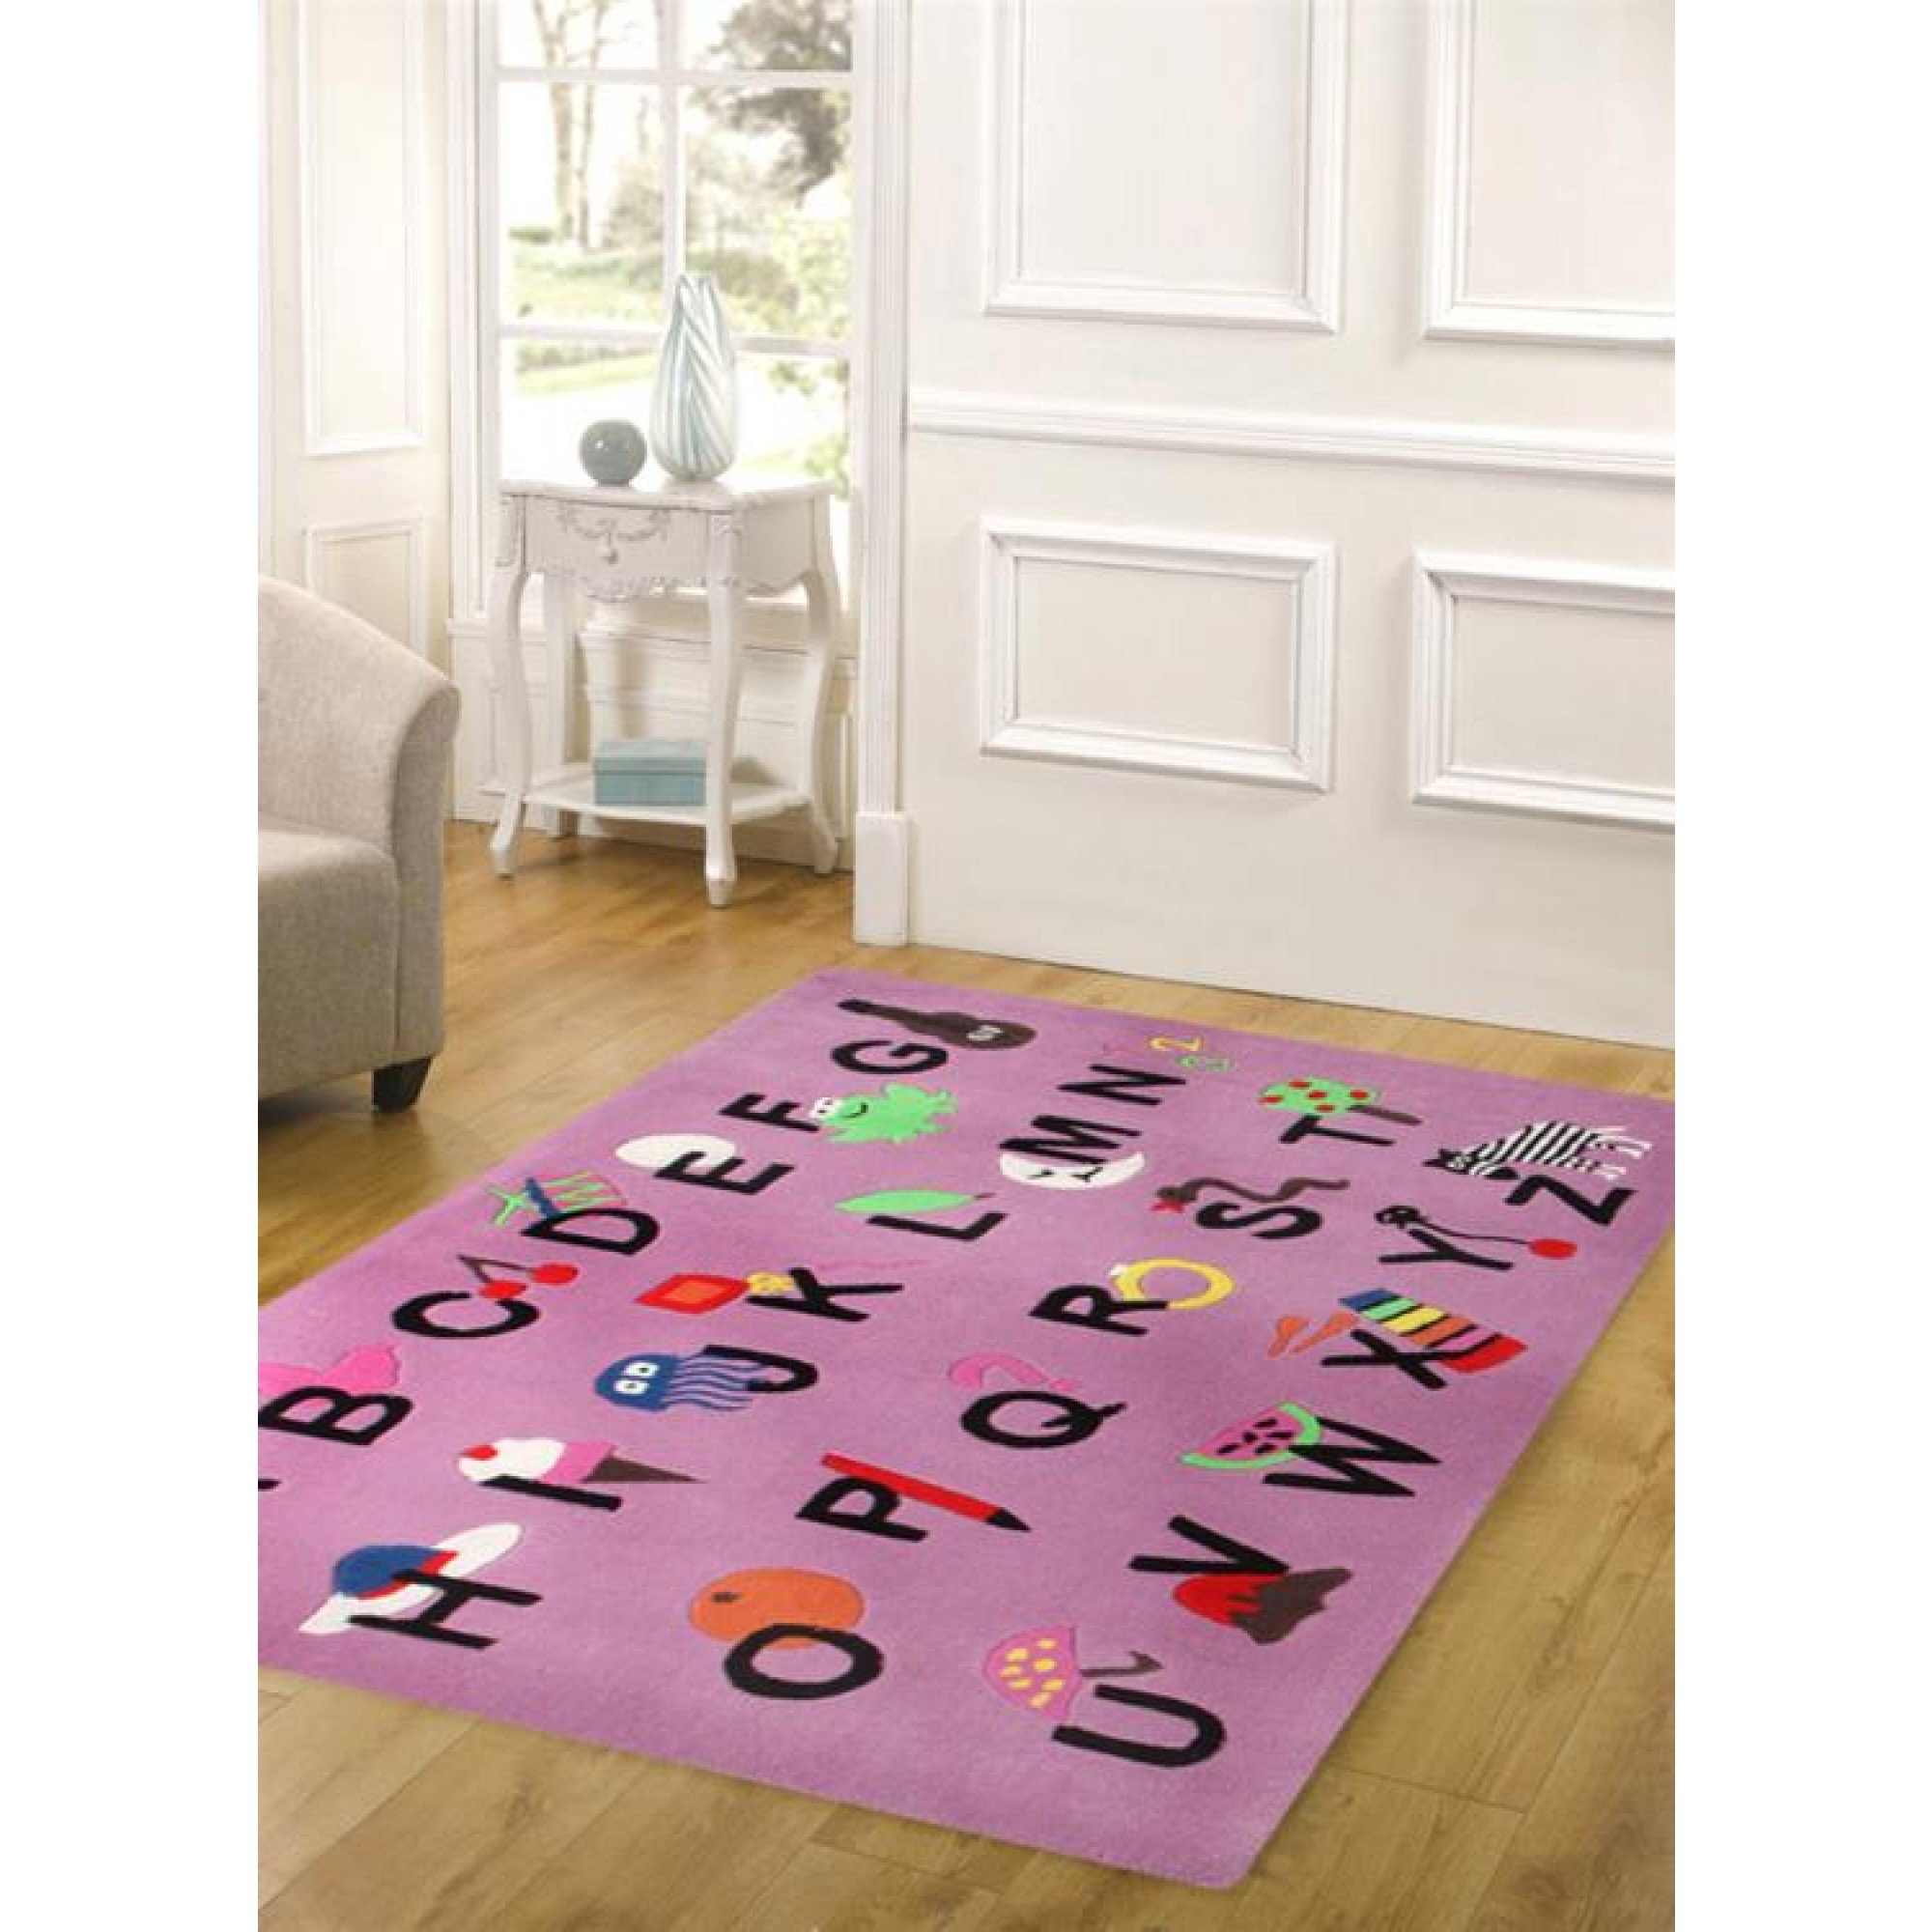 Cool Alphabet Rug Pink Kids Floor Rugs Free Shipping Australia With Regard To Pink Alphabet Rugs (Photo 4 of 15)